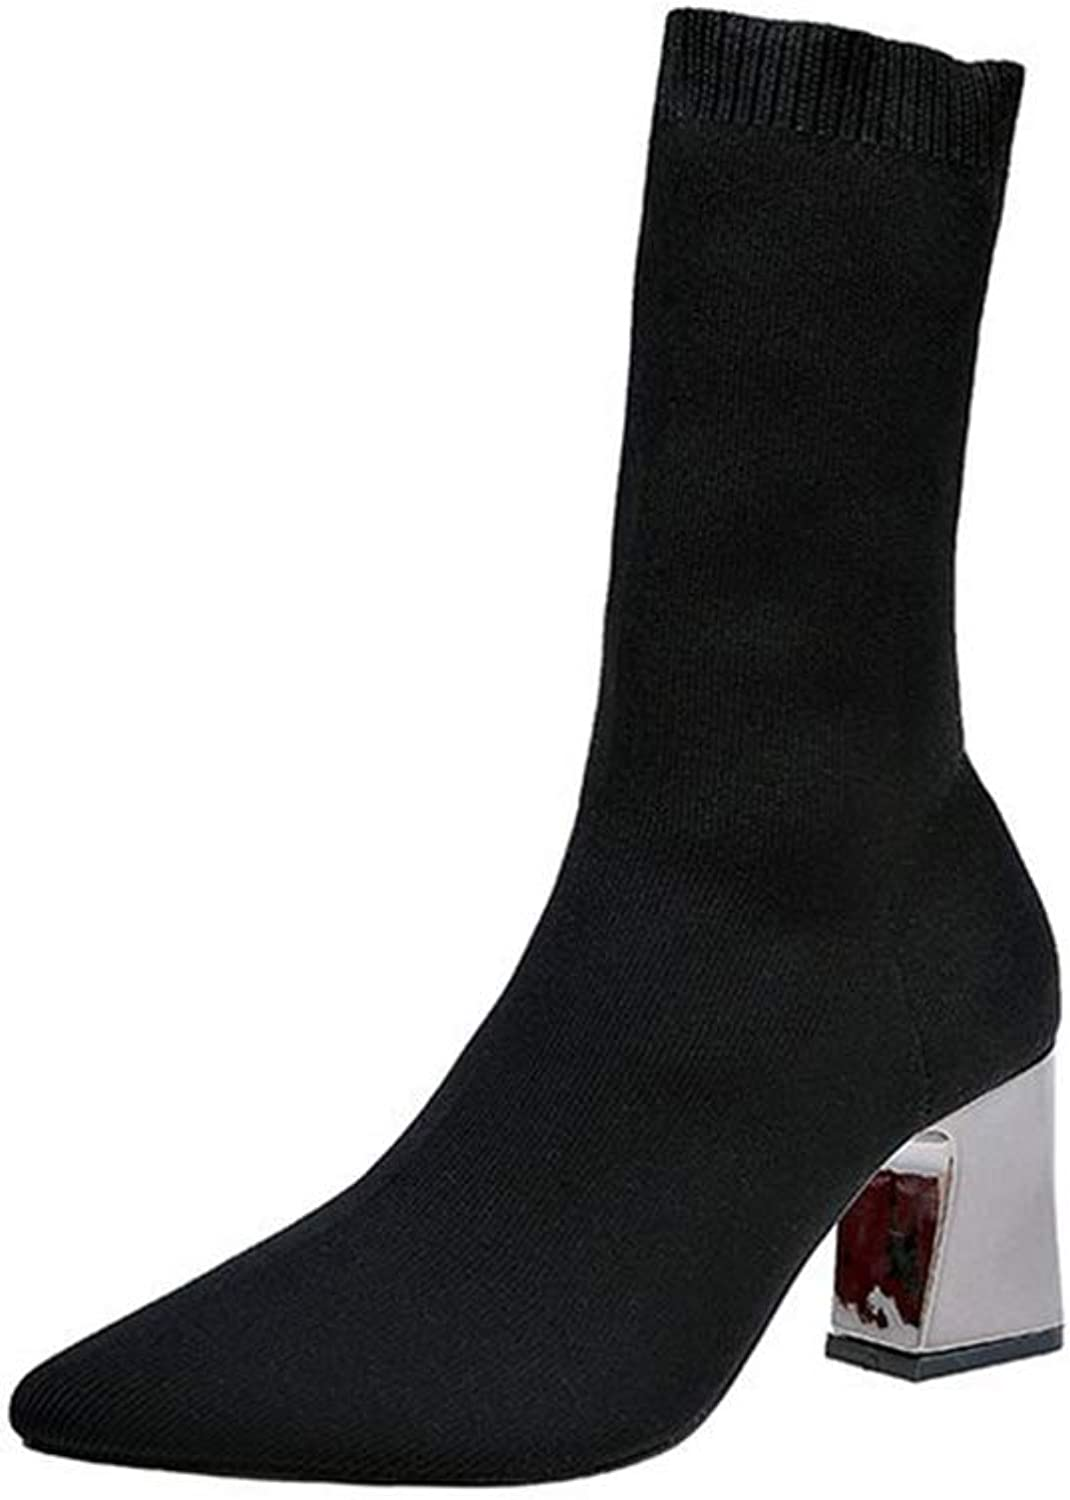 K389diir3xoxo Martin Boots Thick with Women's Boots Skinny Legs Black Wool Tube Elastic Boots